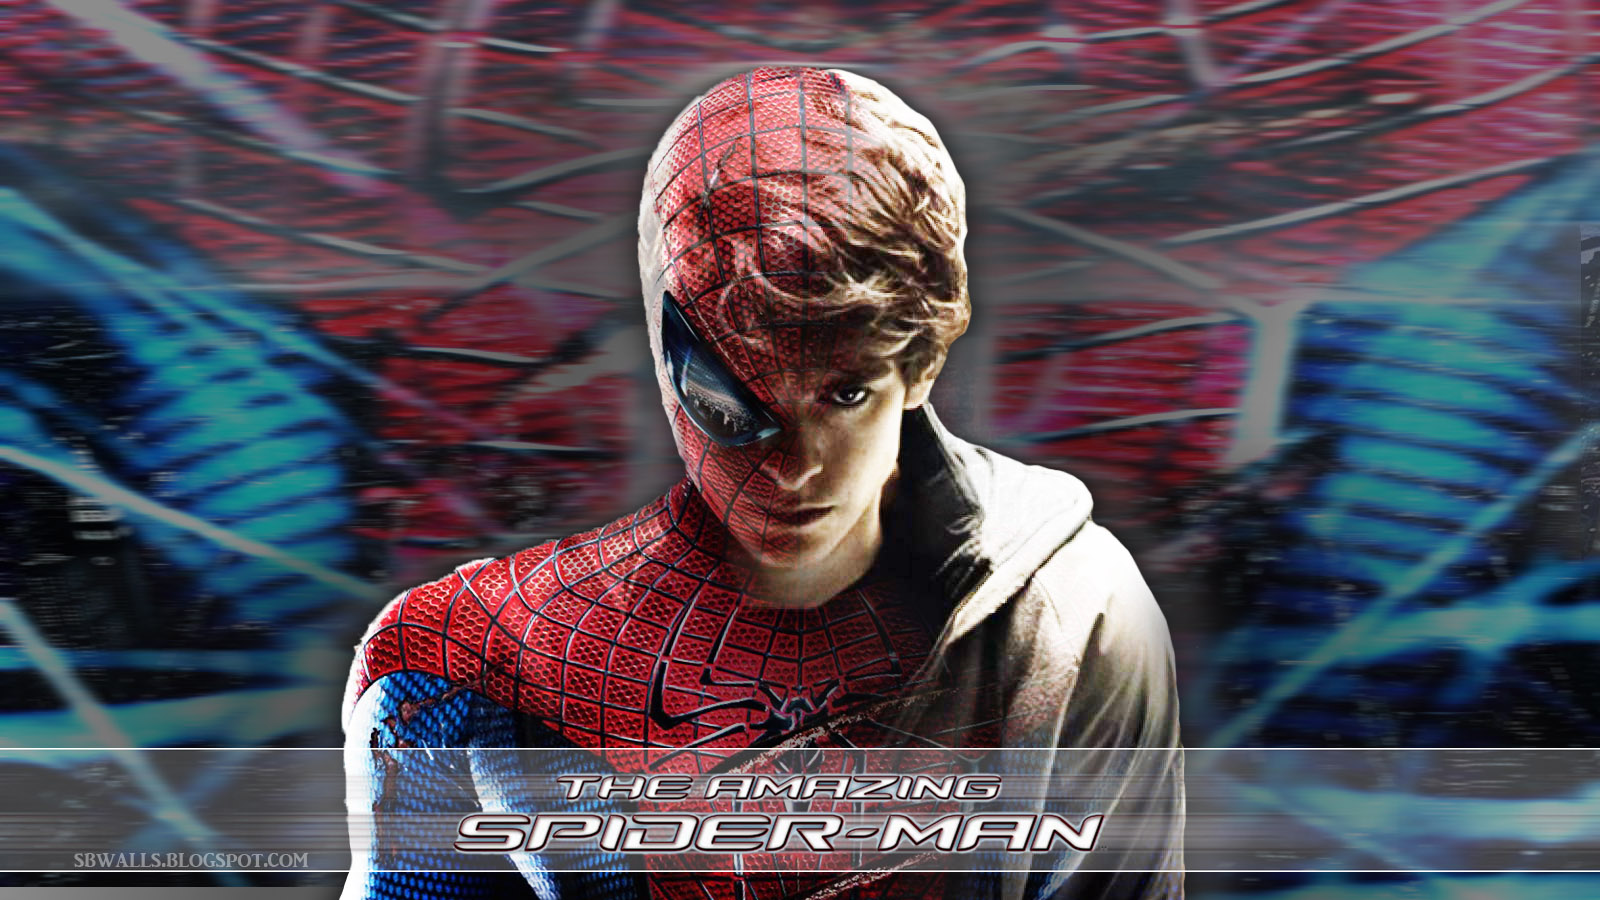 Spider-Man Amazing Spiderman Movie wallpaper